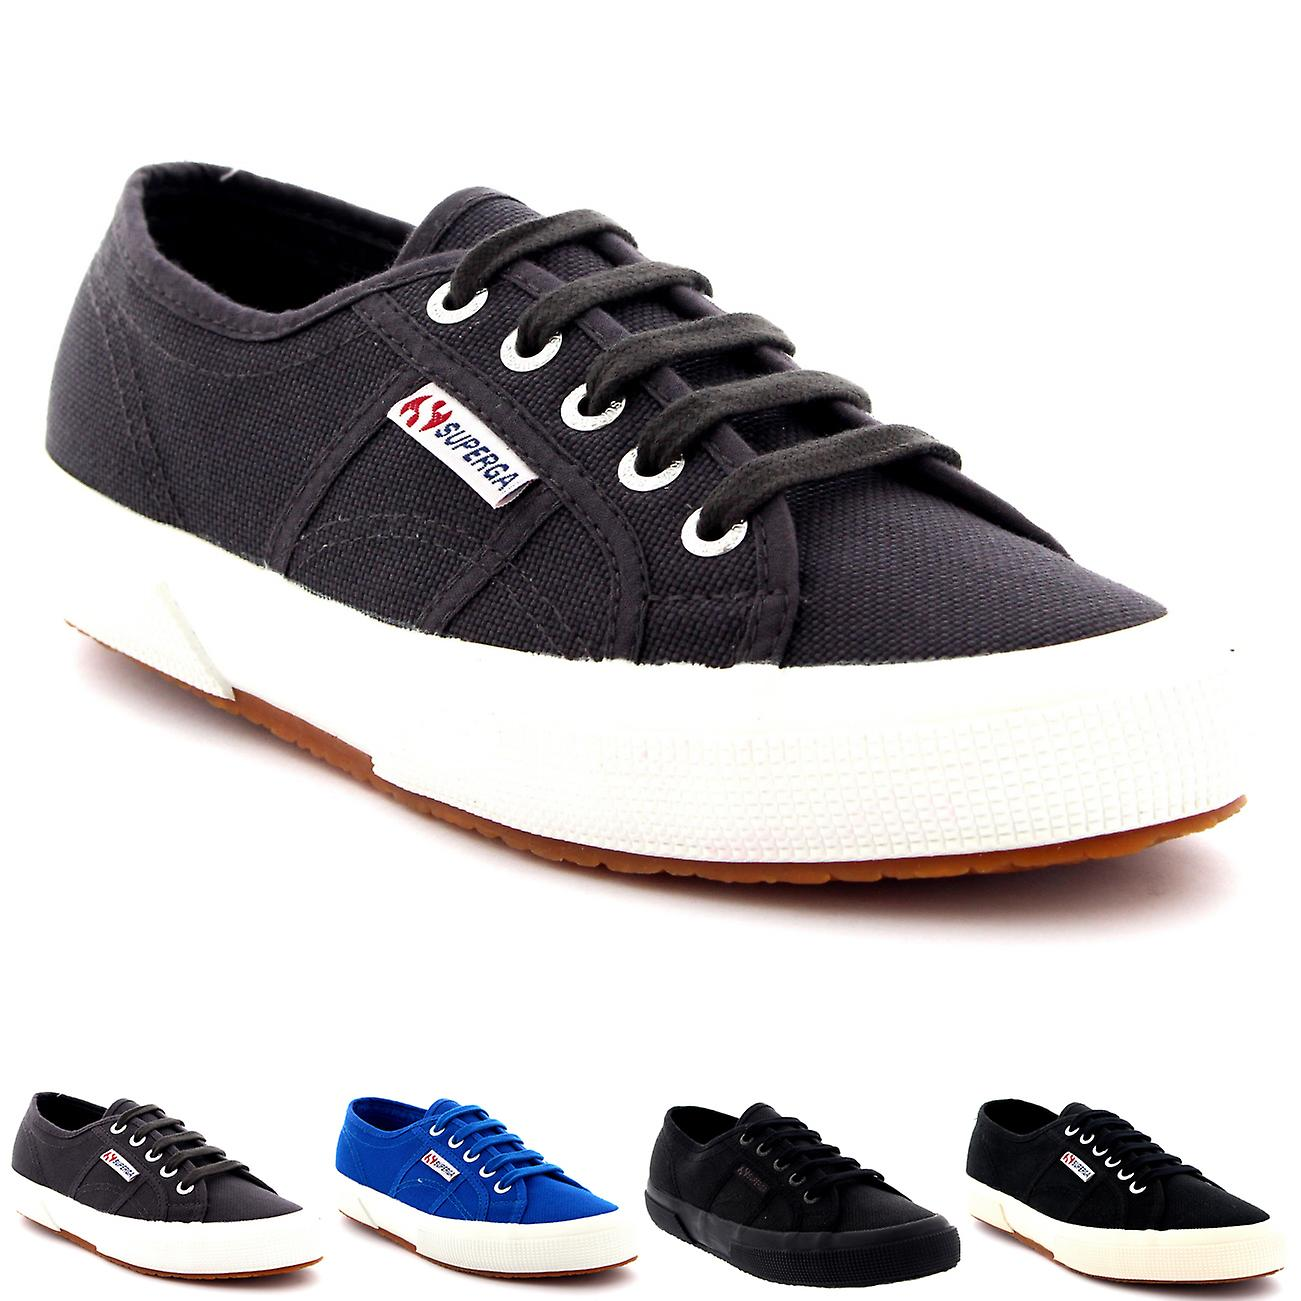 Mens Superga 2750 Cotu Classic Low Top Lace Up Plimsolls Casual Trainers | Up-to-date Stile  | Sig/Sig Ra Scarpa